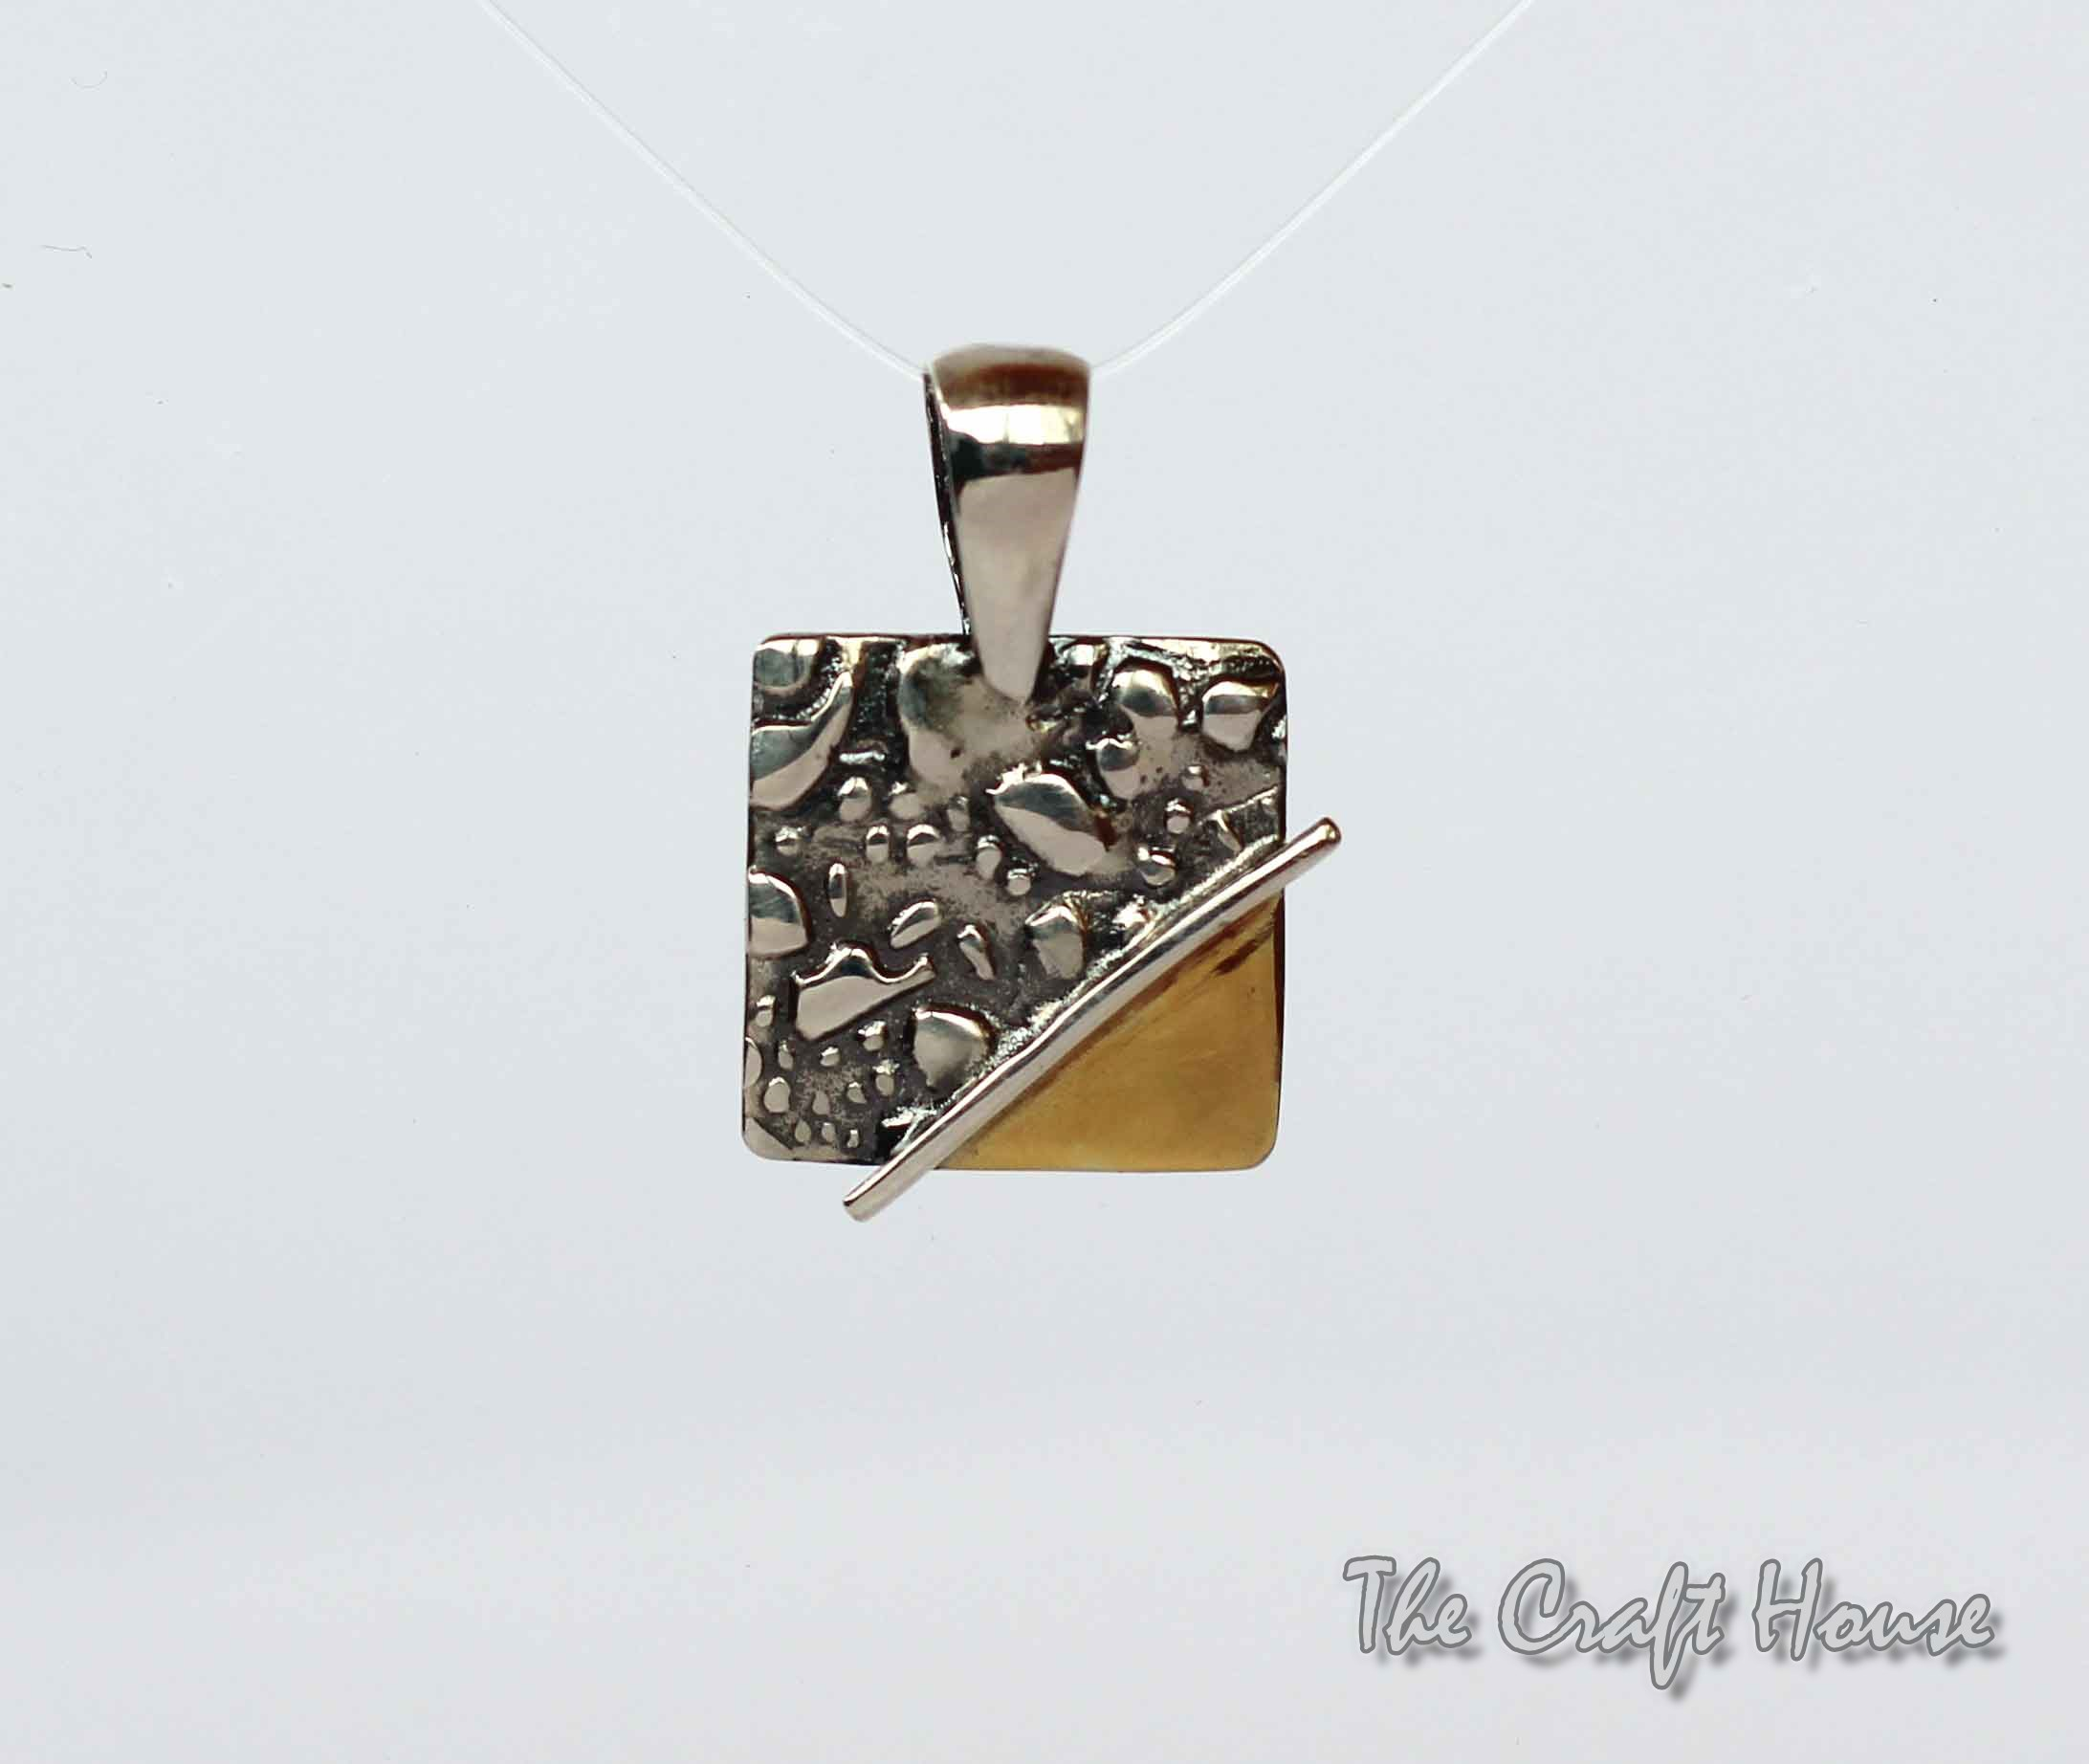 Silver pendant with gold - plating